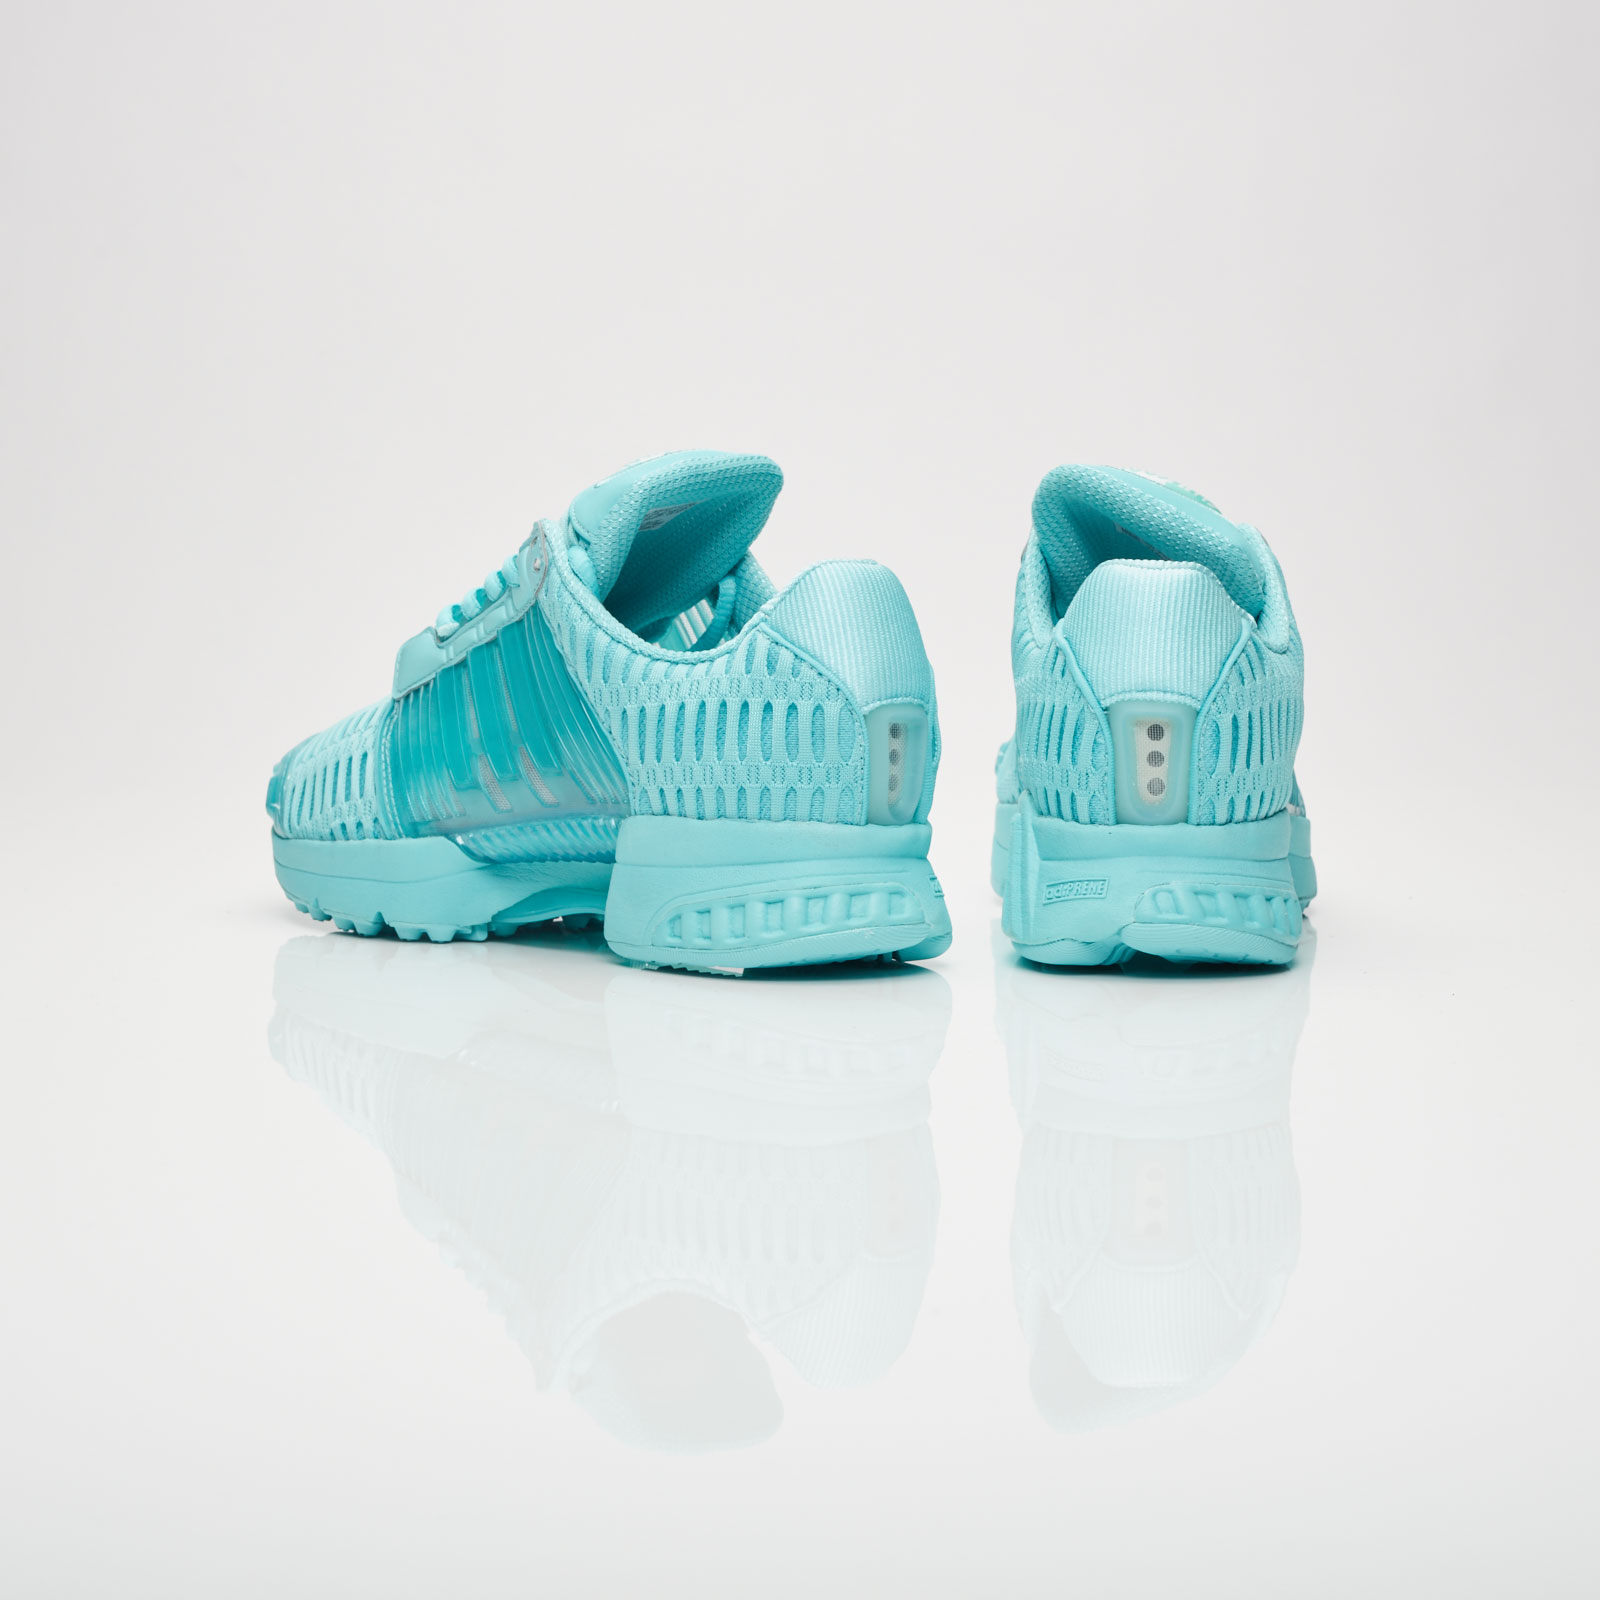 adidas Climacool 1 W Bb5308 Sneakersnstuff sneakers    adidas Climacool 1 W Bb5308 Sneakersnstuff   title=          sneakers